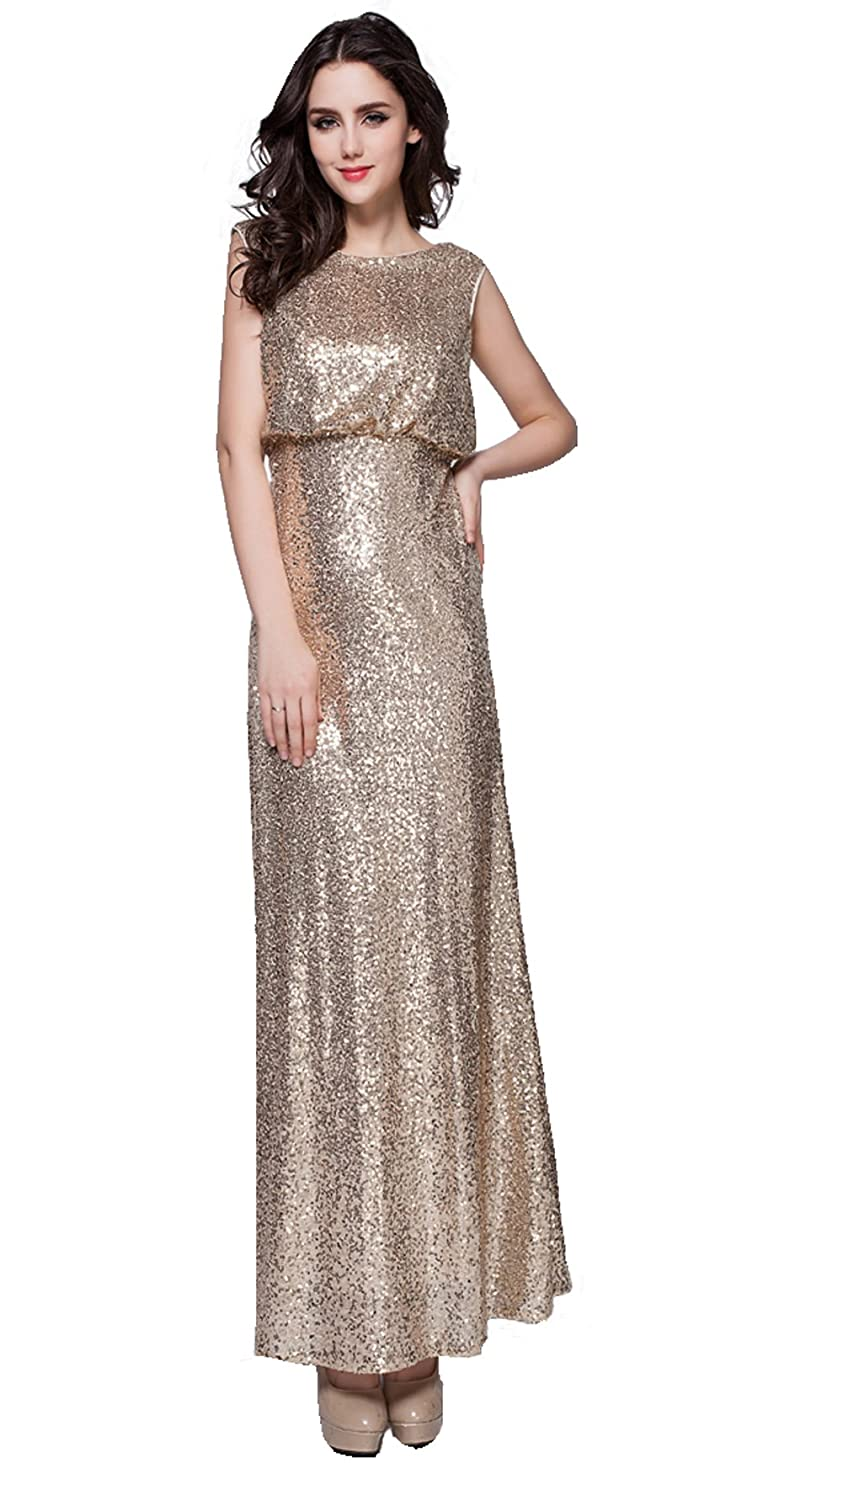 ARTEMISES Womens Sequin Sleeveless Celebrity Maxi Party Cocktail Dress